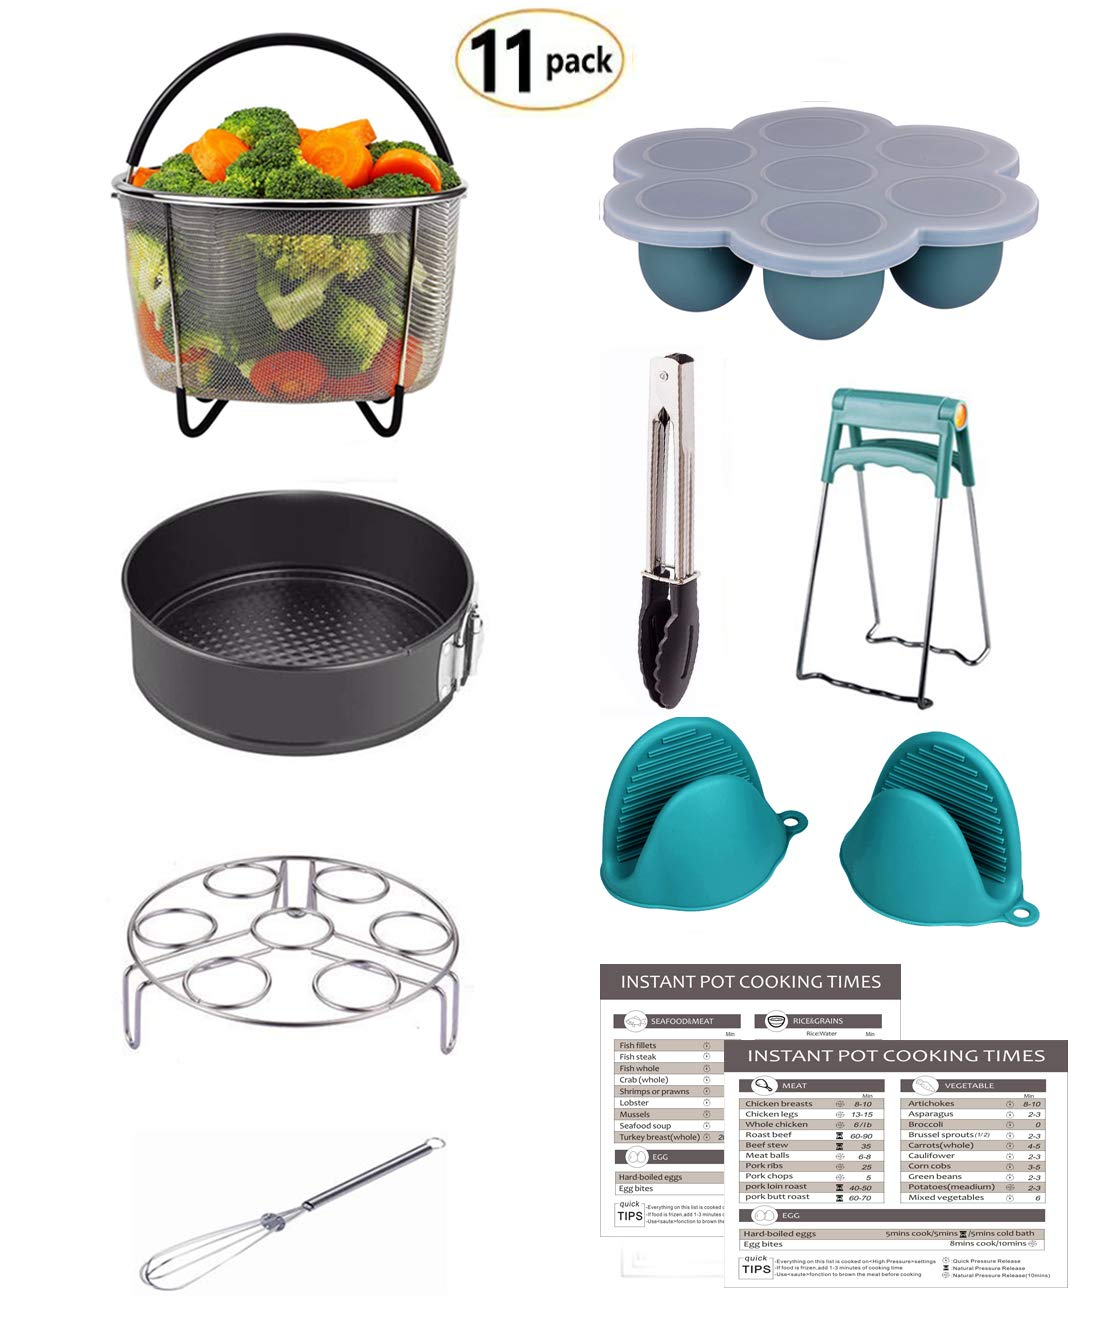 Mery Instant Pot Accessories Set Fits 6,8Qt Pressure Cooker 11-PCS Steamer Basket, Rack, Egg Bites Molds, Springform Pan, Tongs, 2 Magnetic Cheat Sheets